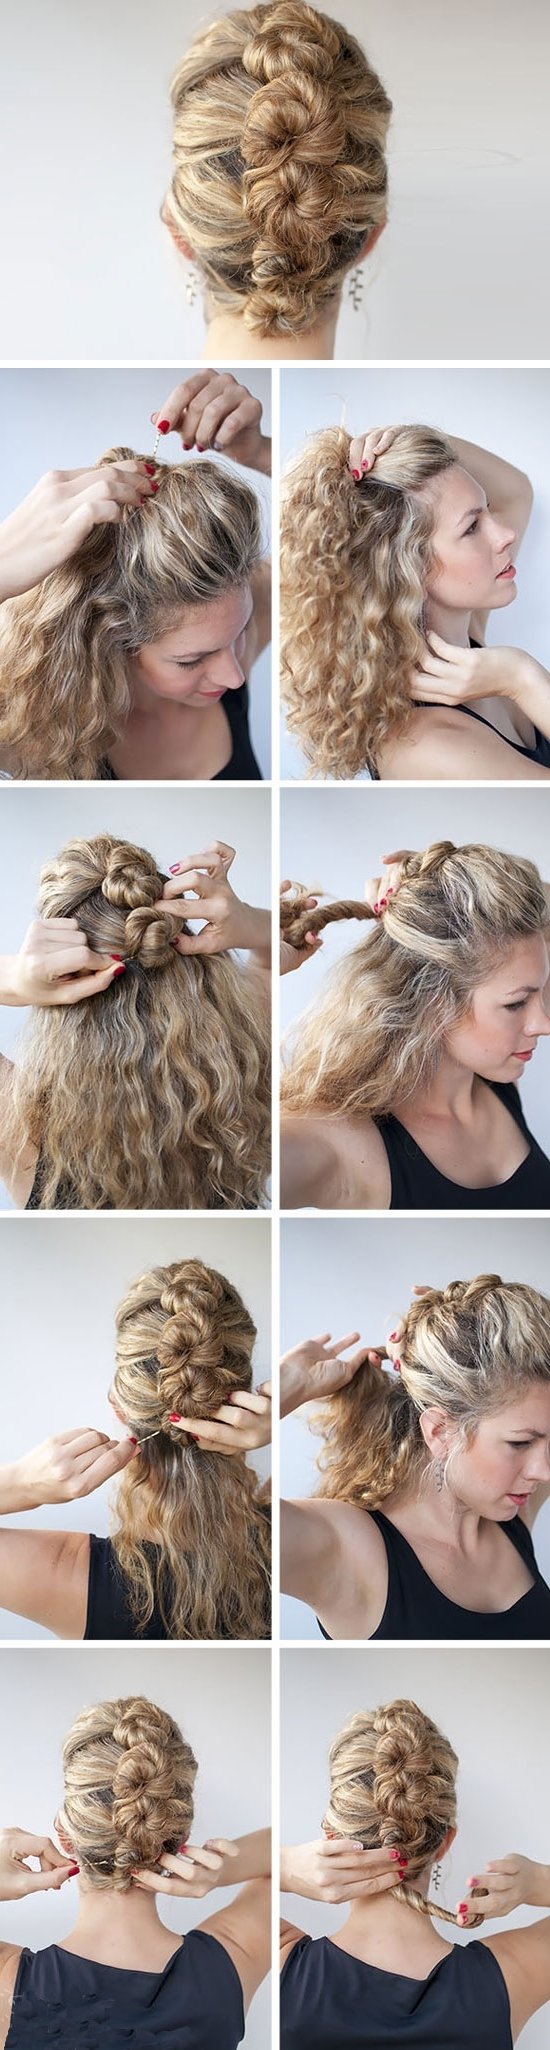 Most Popular Diy Wedding Hairstyles For Easy Diy Wedding Hairstyles For Long Hair (View 10 of 15)